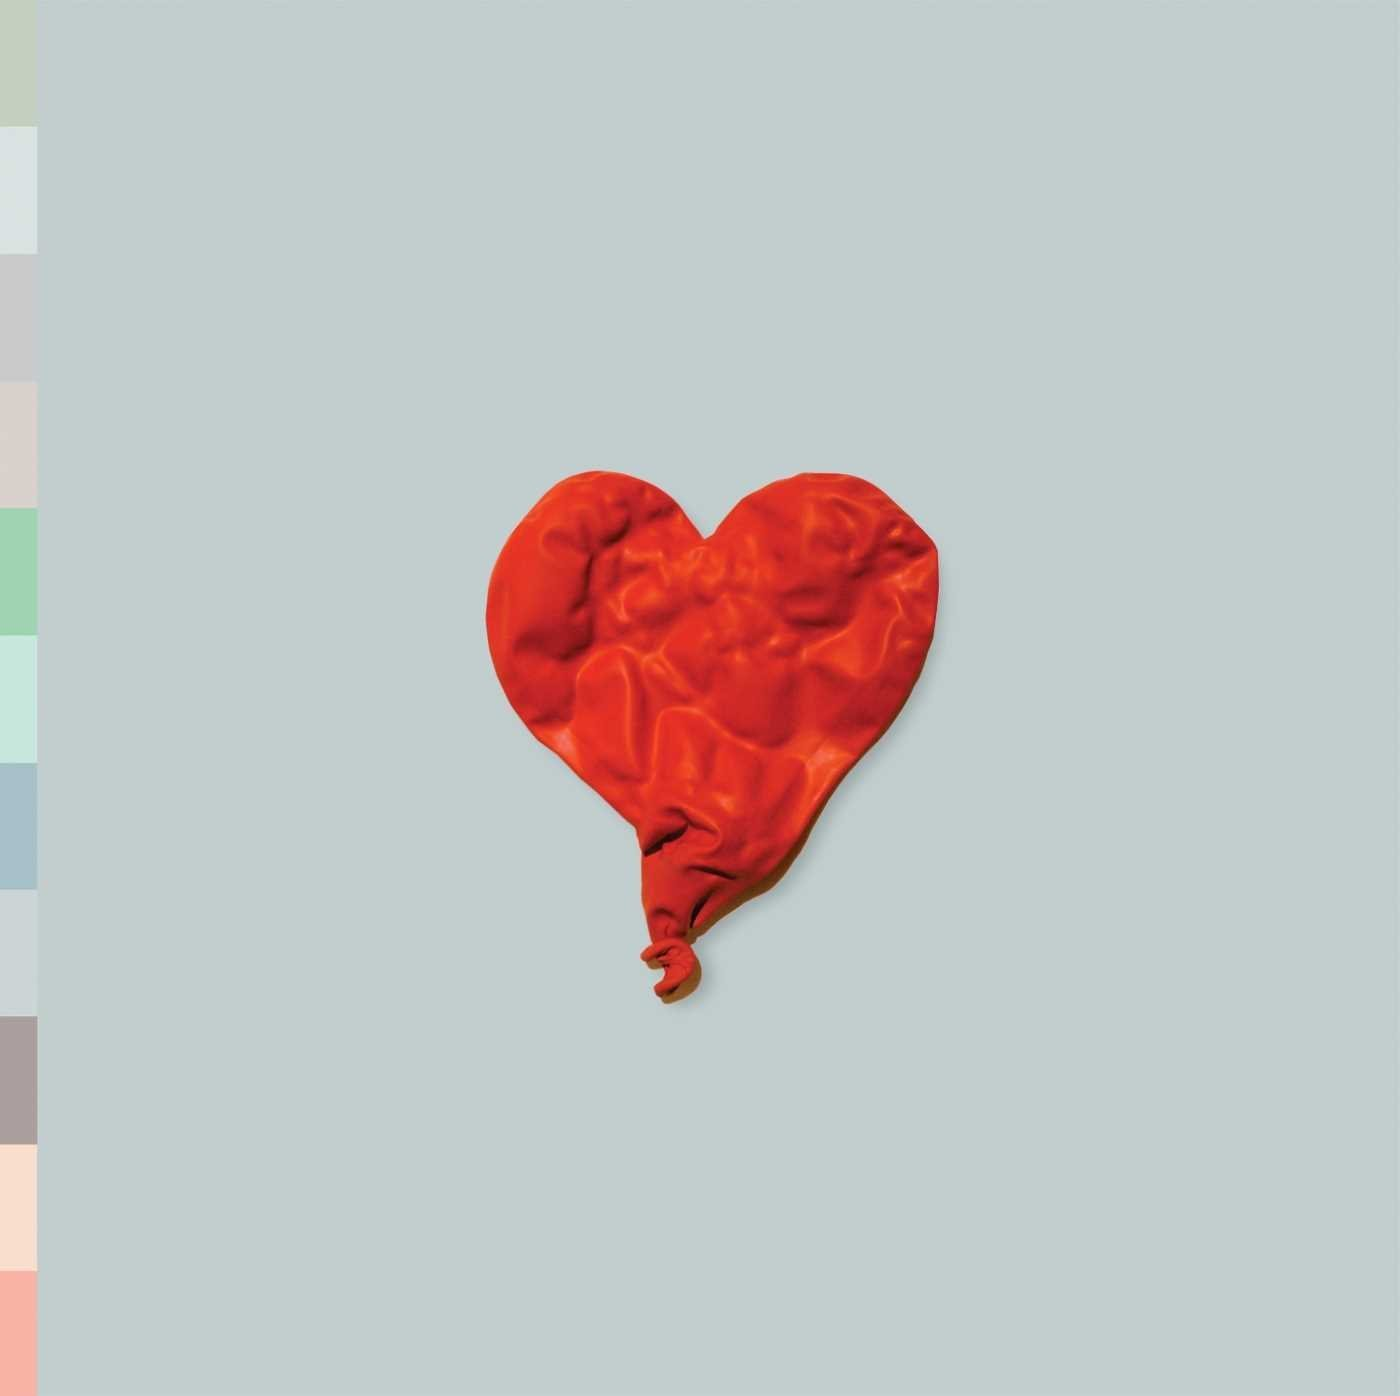 Kanye West, 808s & Heartbreak